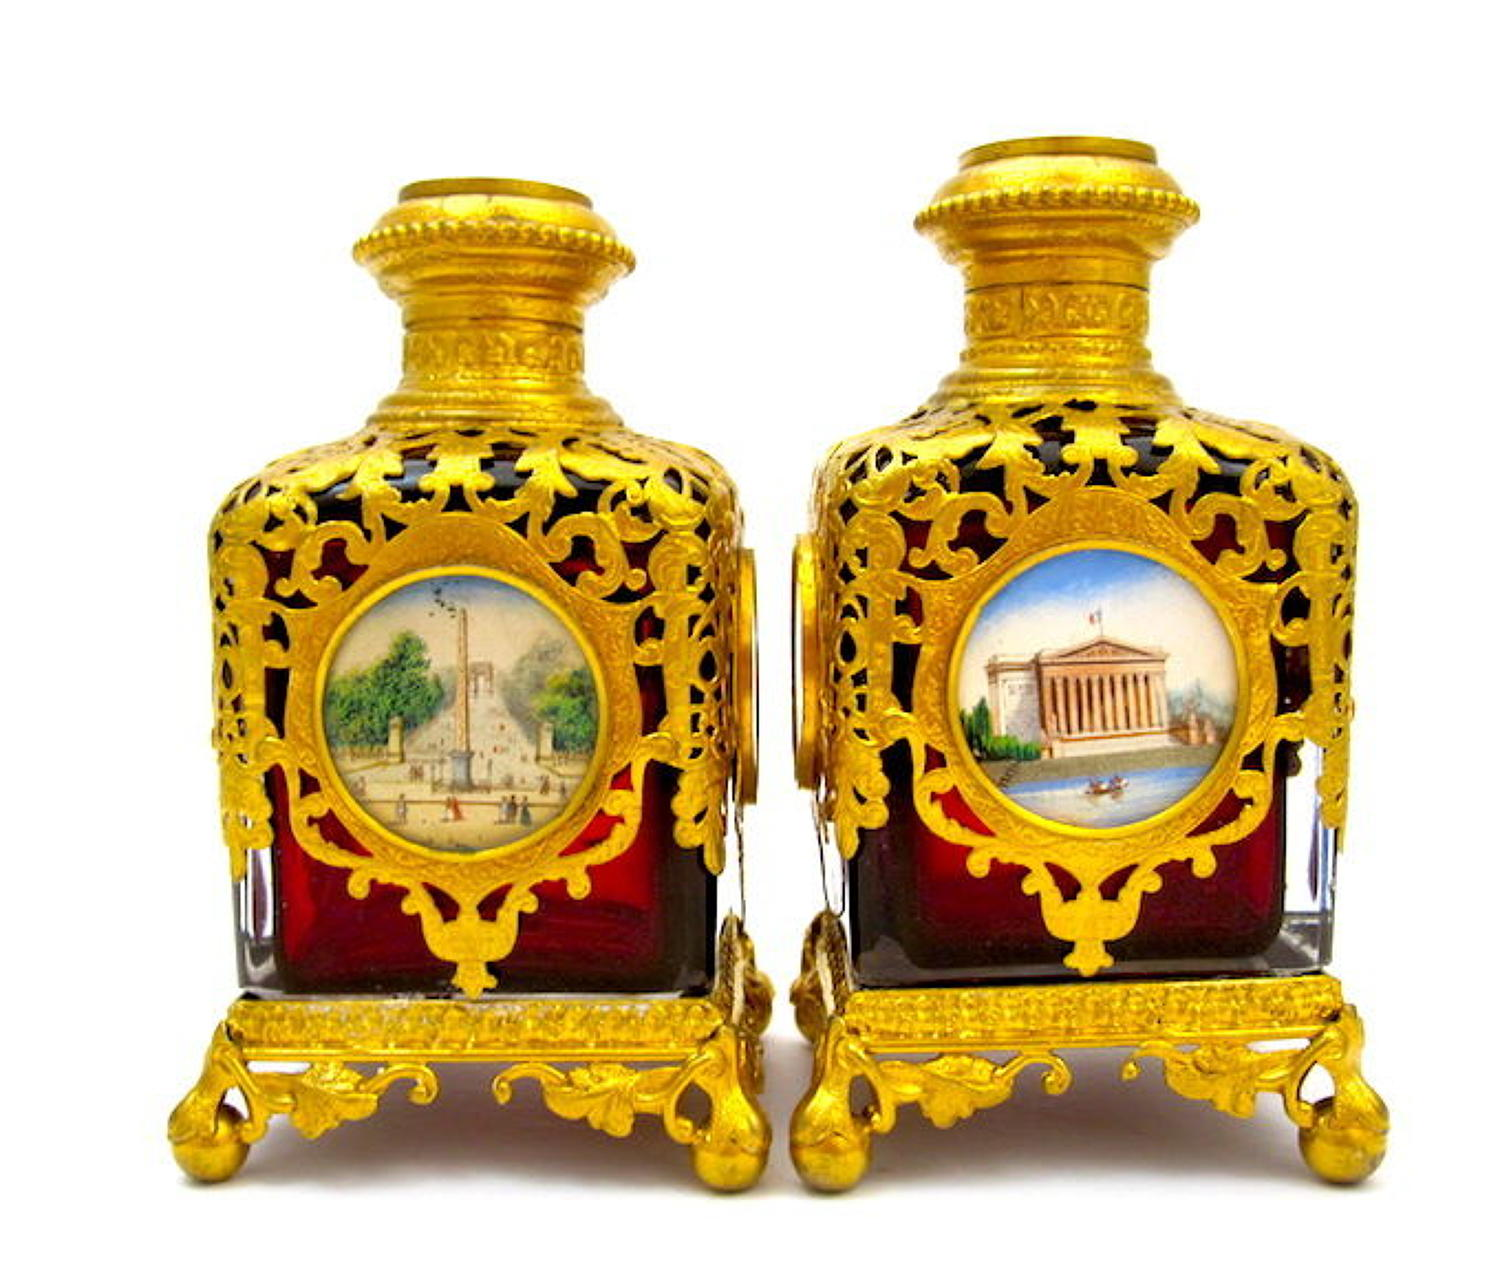 Rare Pair of Large Antique Palais Royal Ruby Red Glass Perfume Bottles